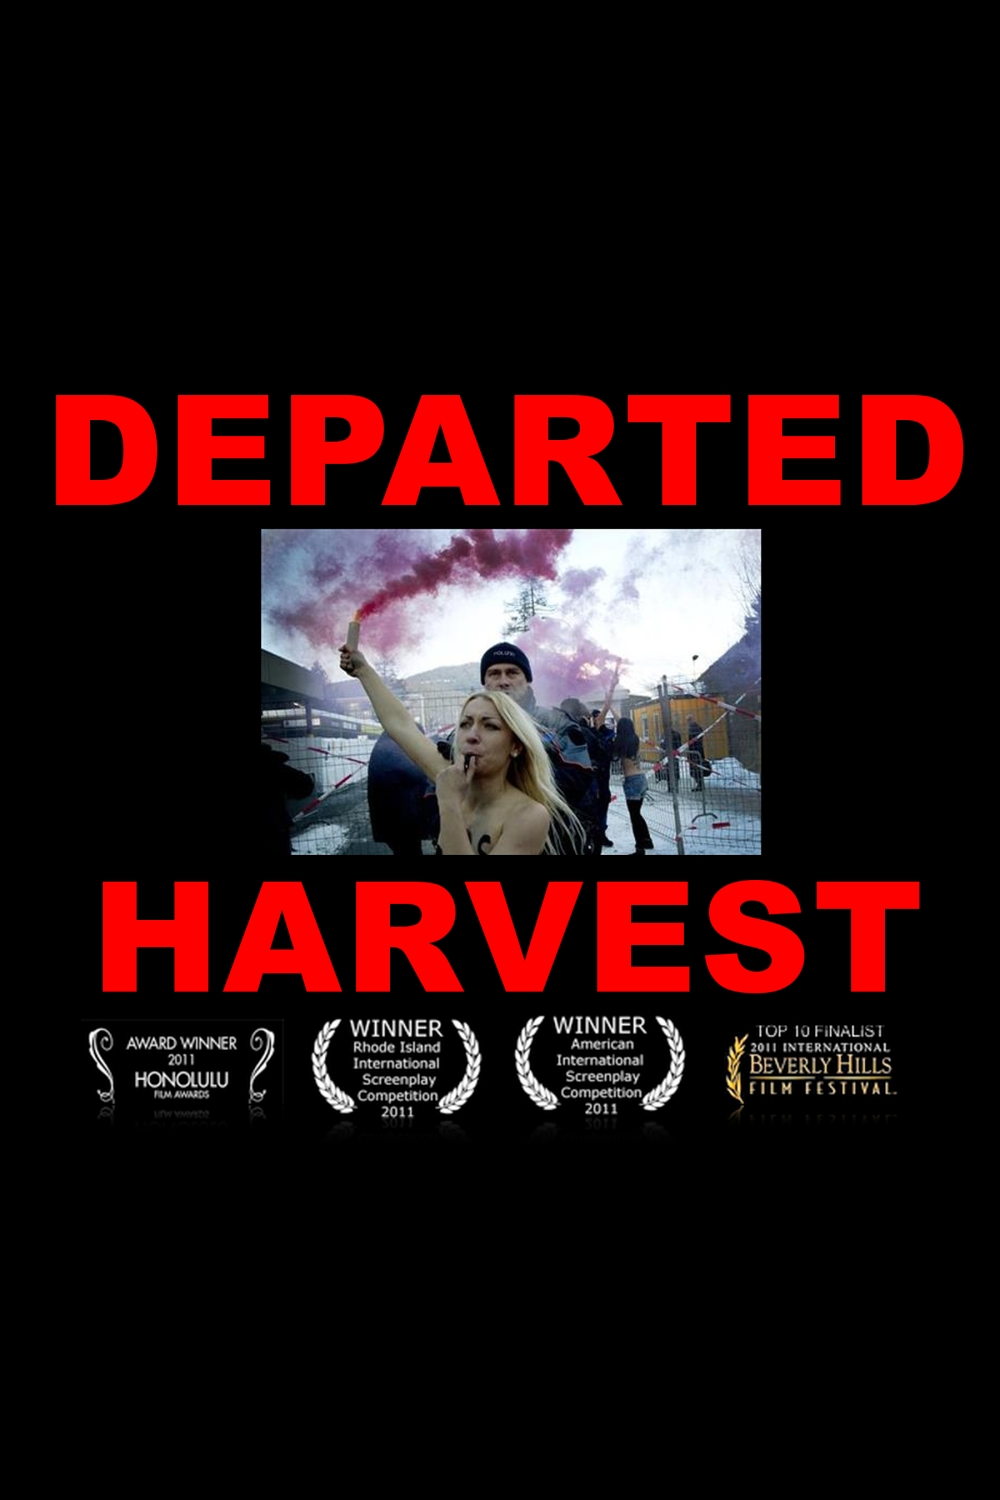 DEPARTED HARVEST POSTER18